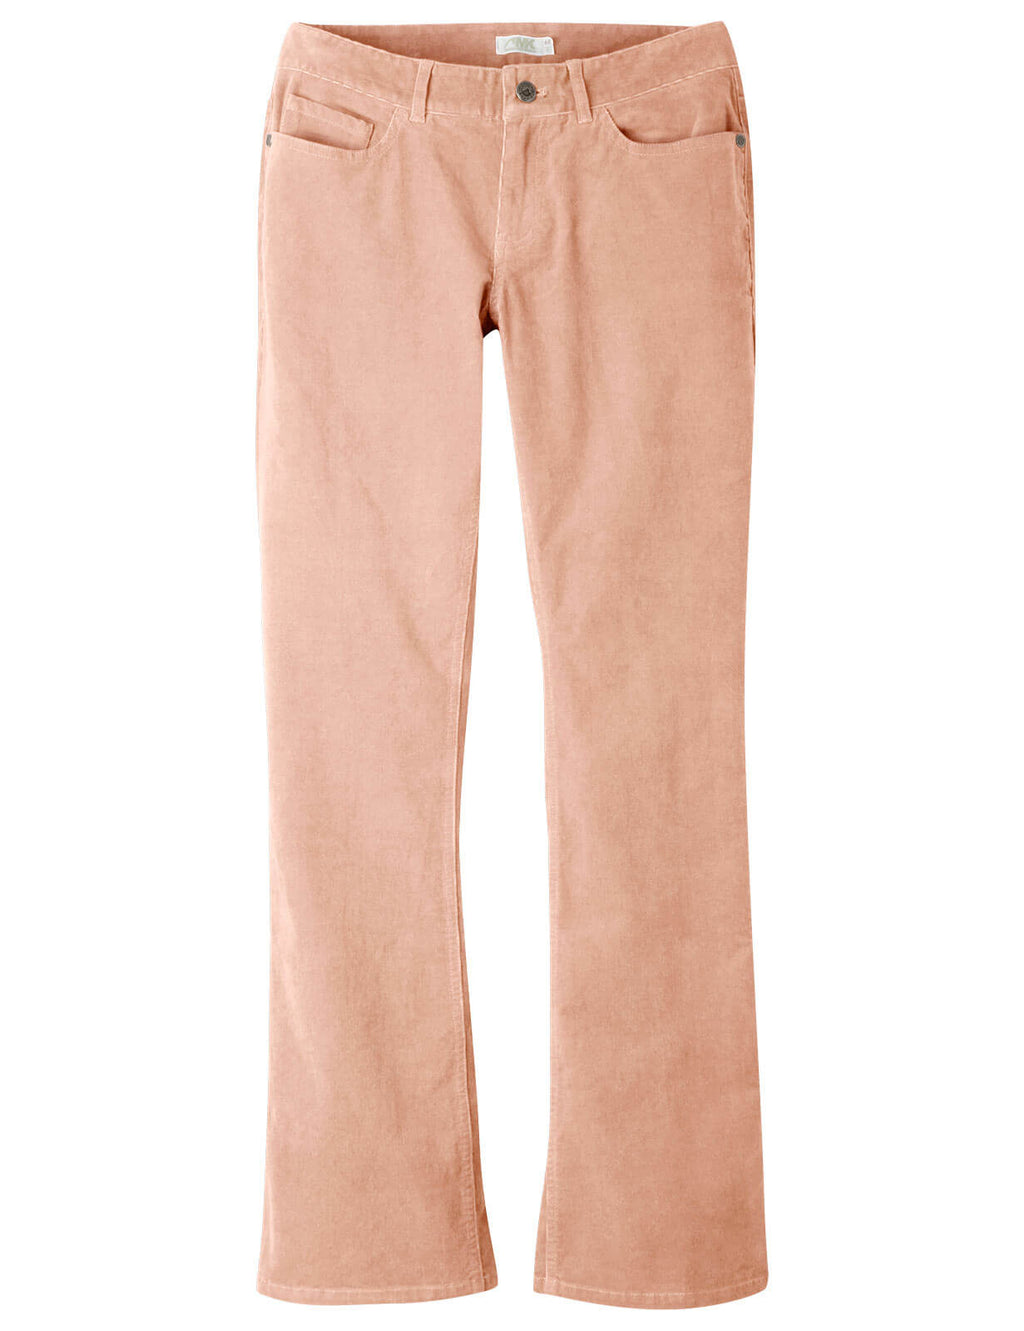 Women's Canyon Cord Pant | Slim Fit